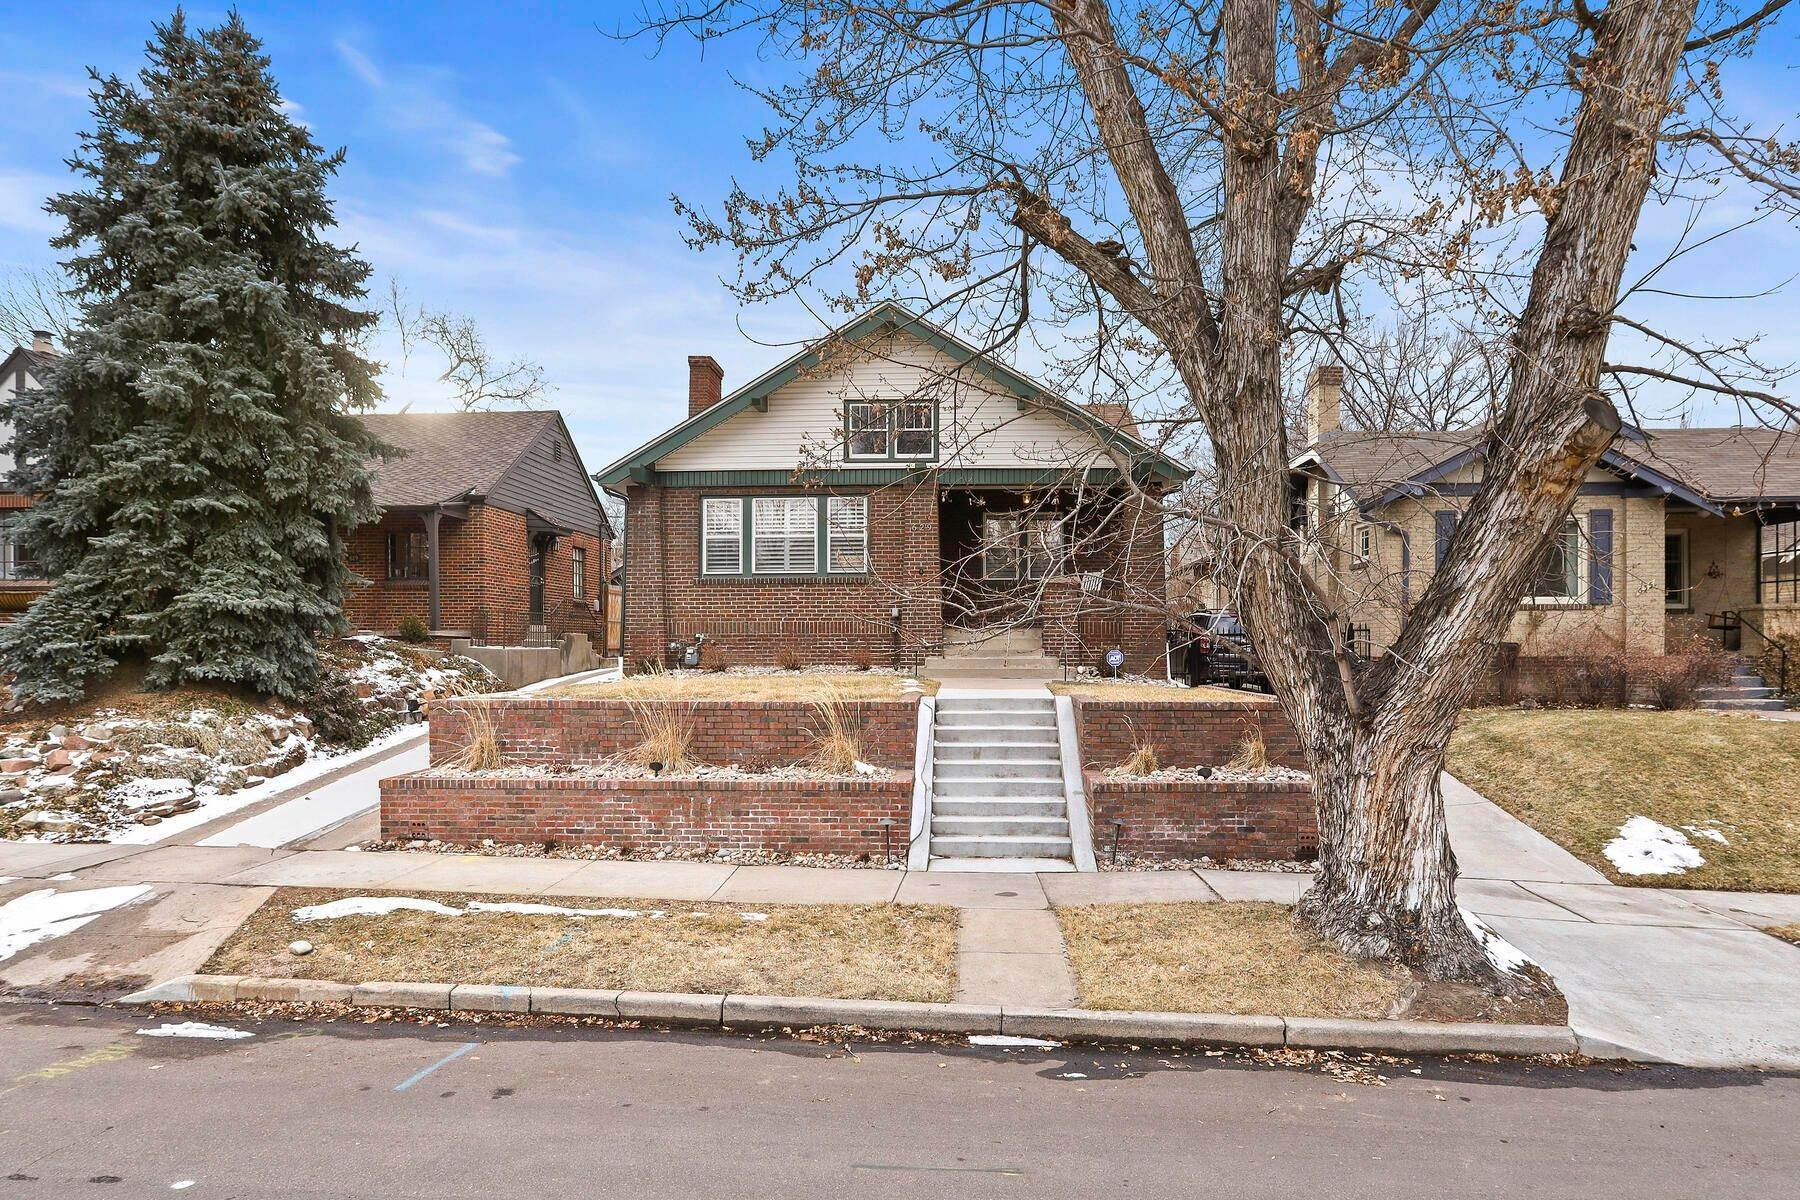 Property en 629 Garfield Street, Denver, Co, 80206 629 Garfield Street Denver, Colorado 80206 Estados Unidos